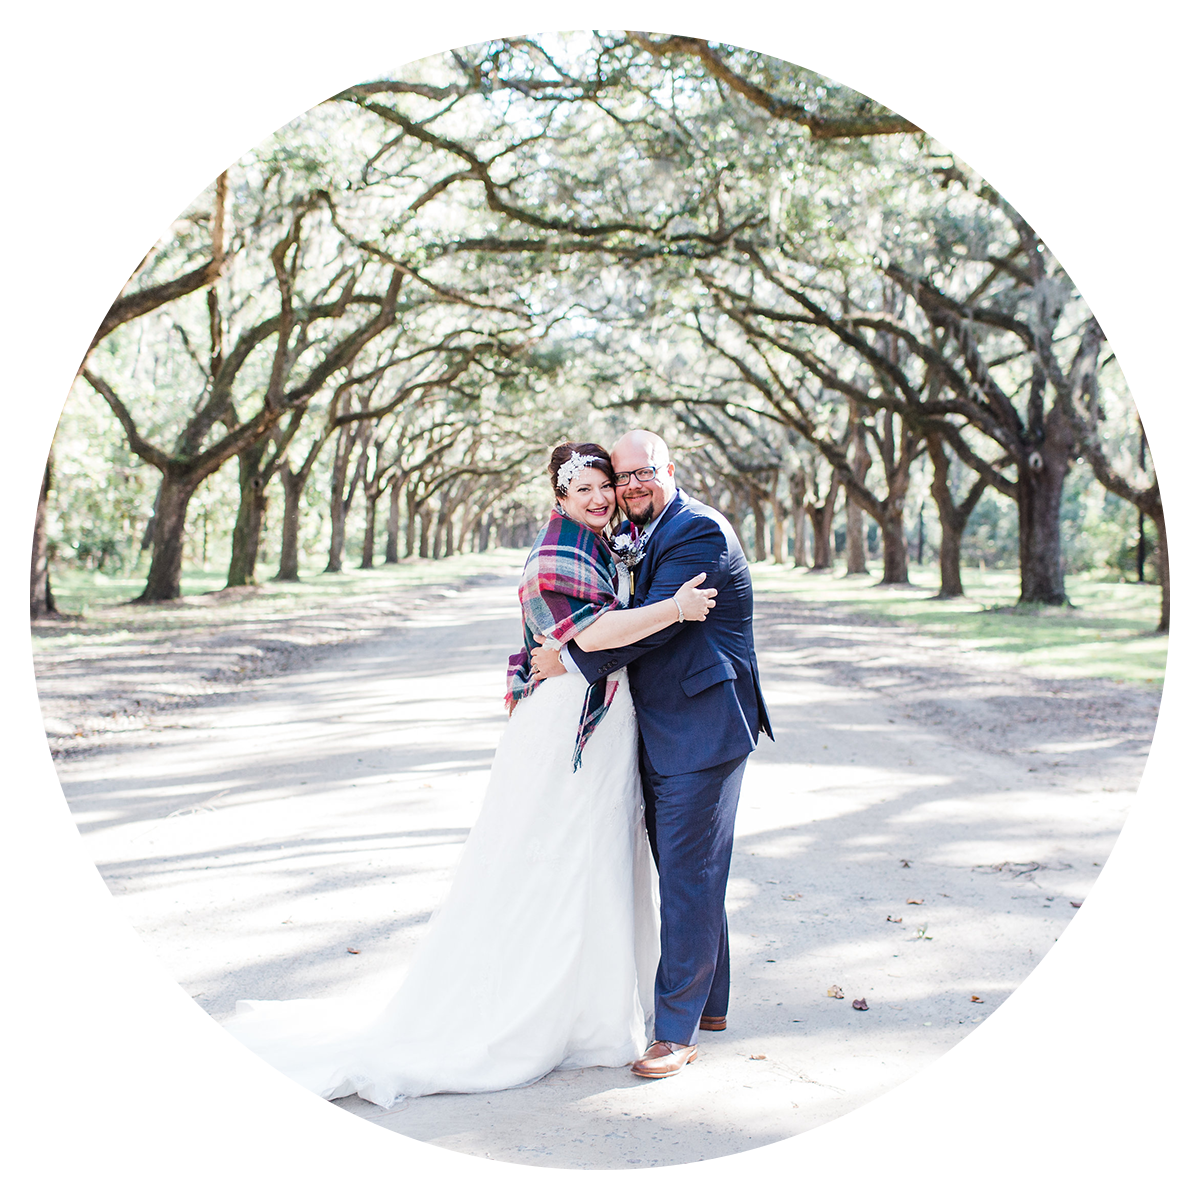 kirsty-rob-wormsloe-elopement-apt-b-photo-savannah-elopement-photographer-savannah-wedding-photorapher-savannah-weddings-savannah-elopements.png